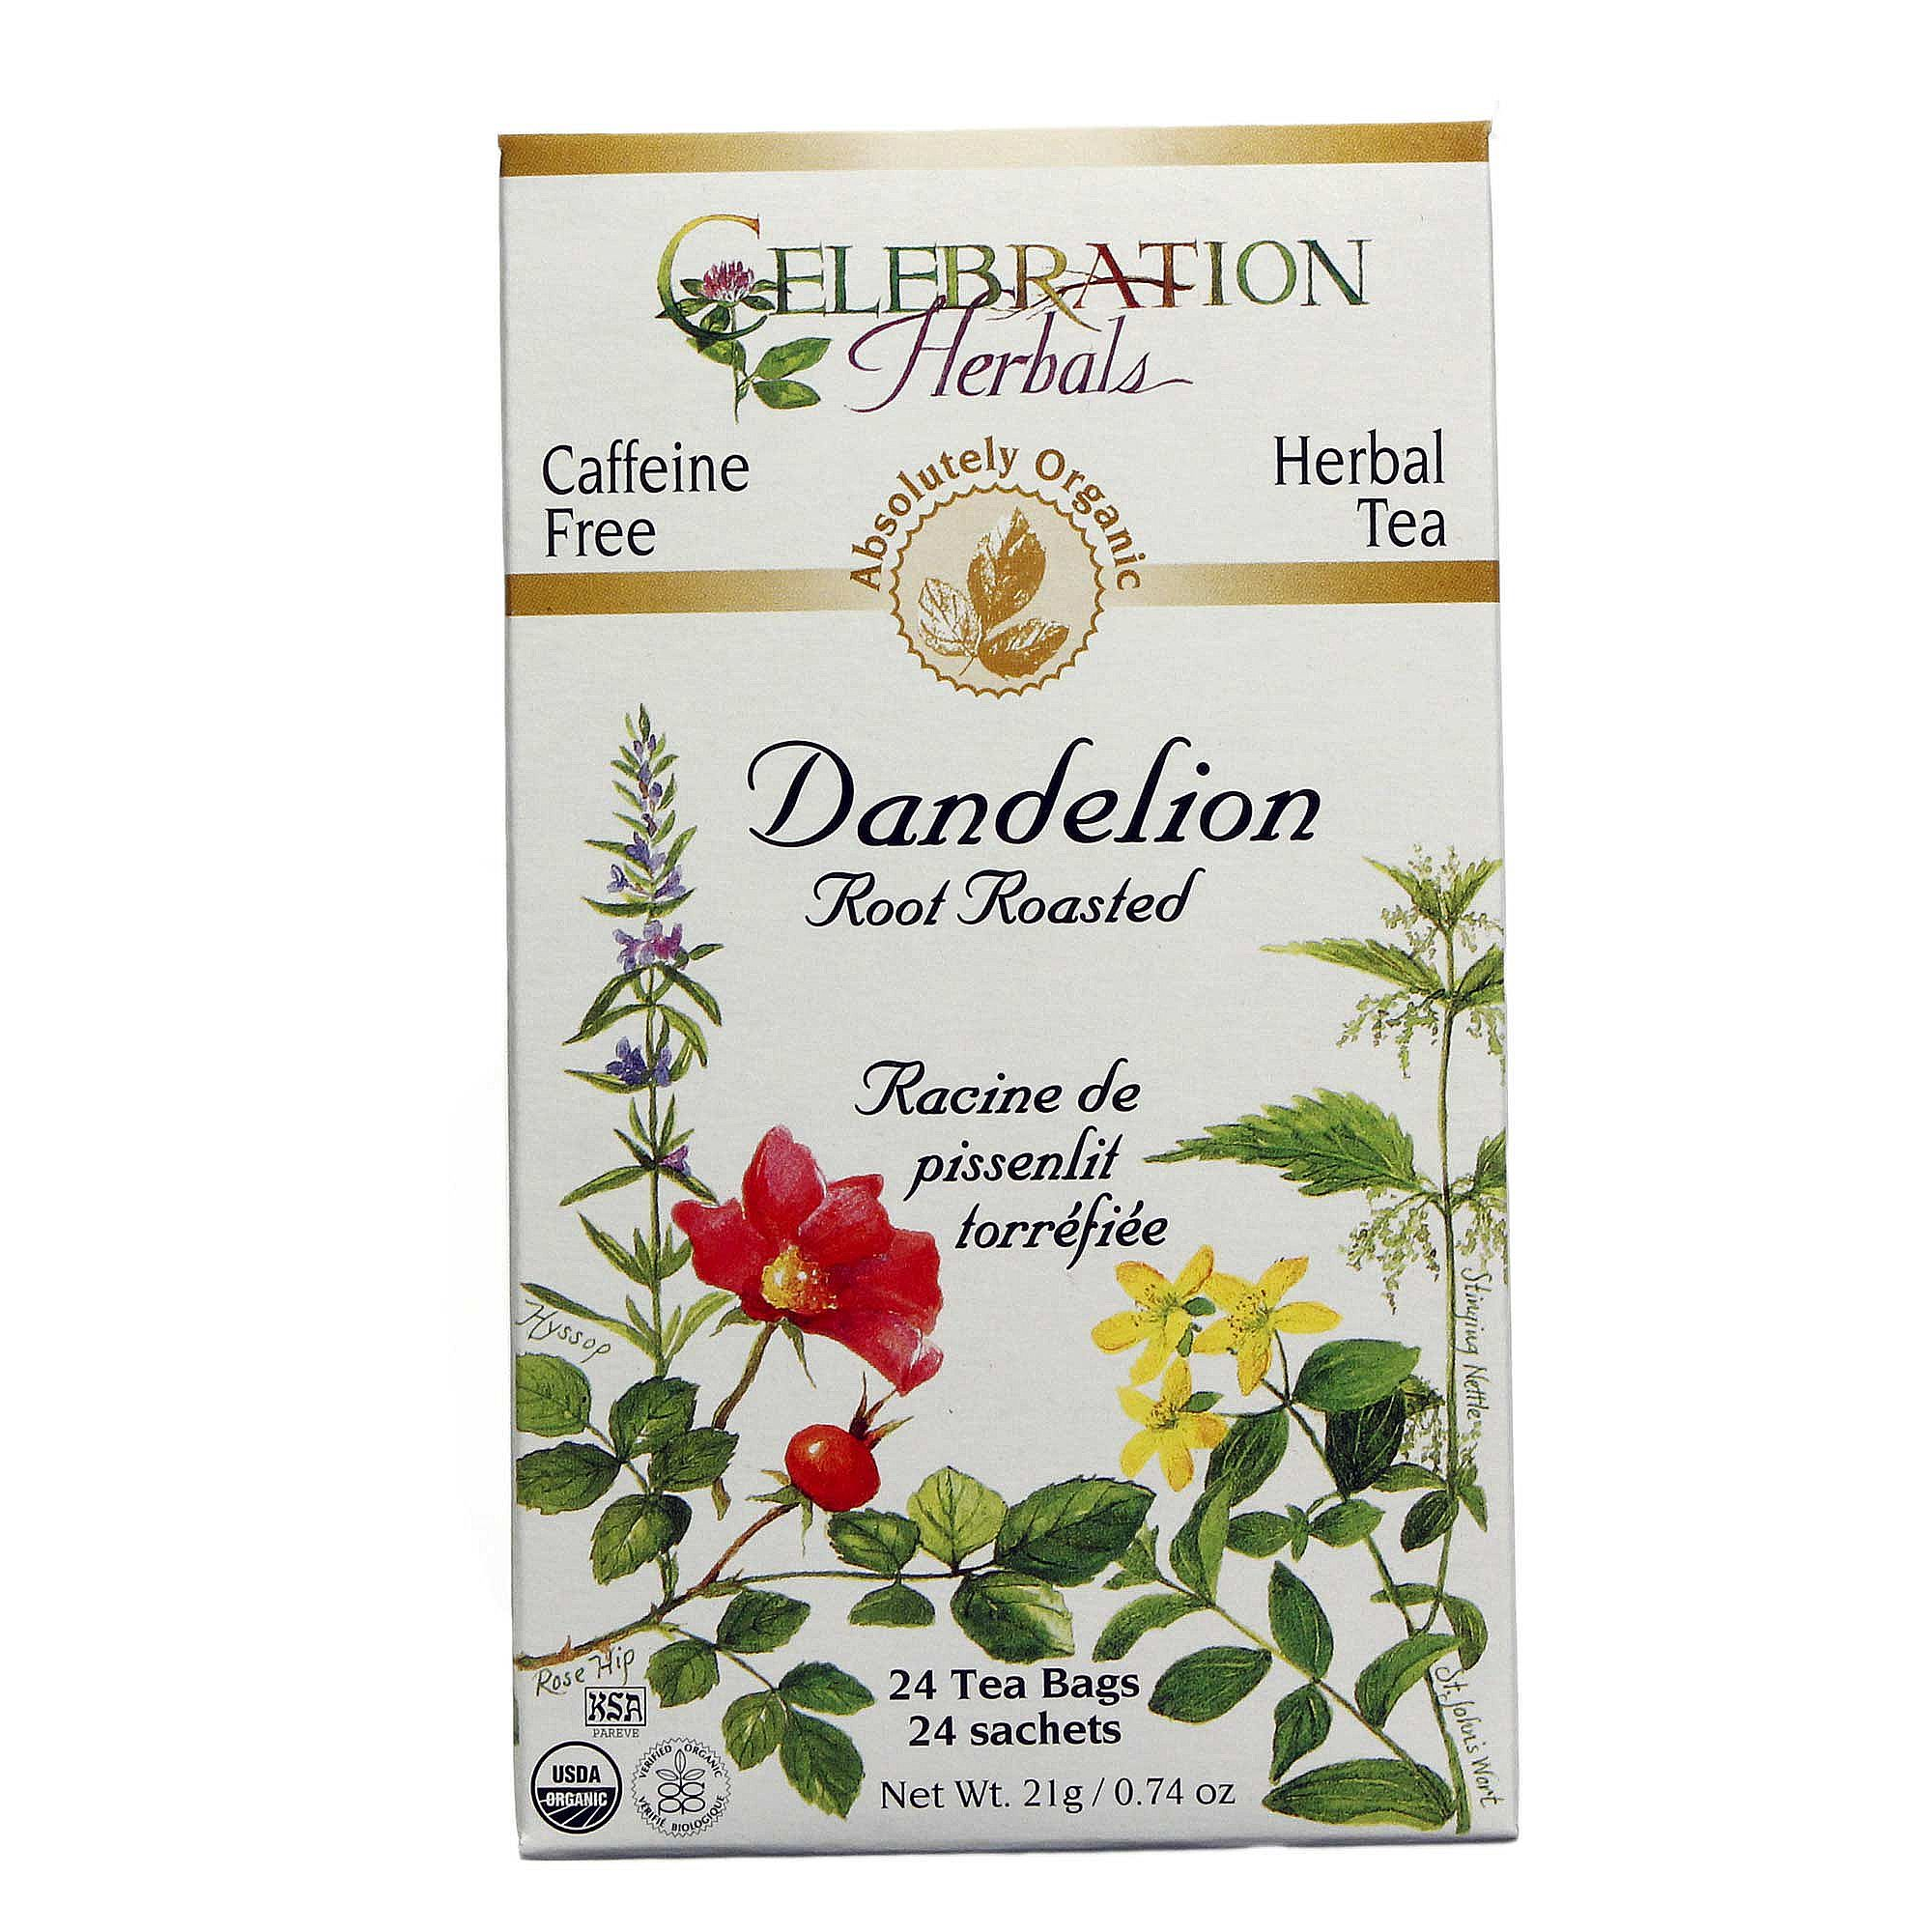 Celebration Herbals Dandelion Root Roasted Tea Organic, 24 Ct